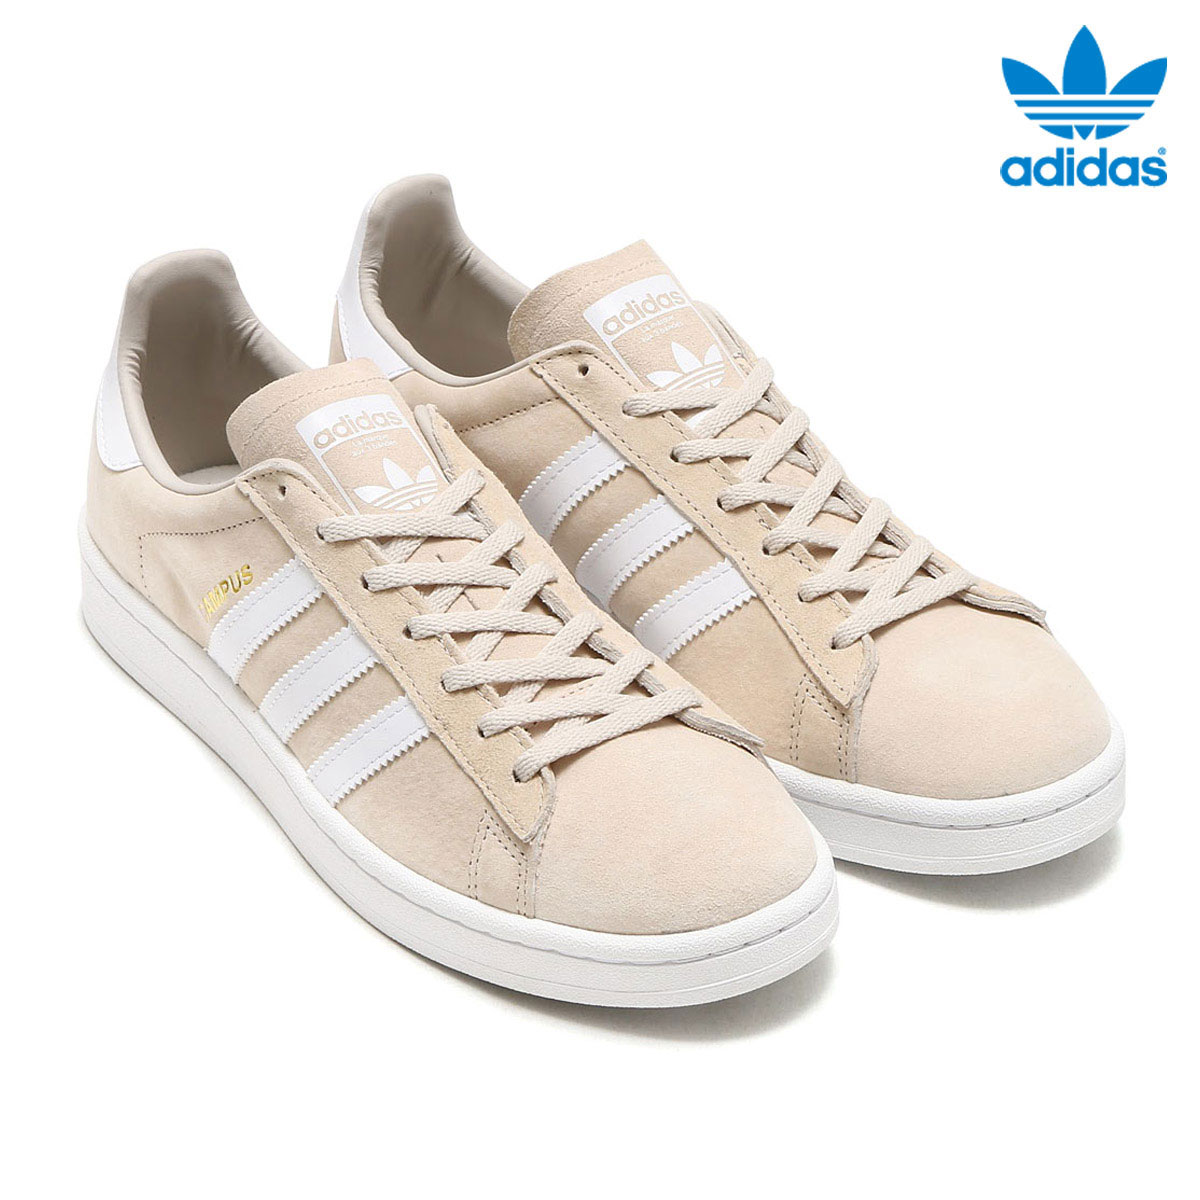 adidas Originals CAMPUS W (Adidas original scan pass W) (Clear Brown/Running White/Crystal White) 17FW-I